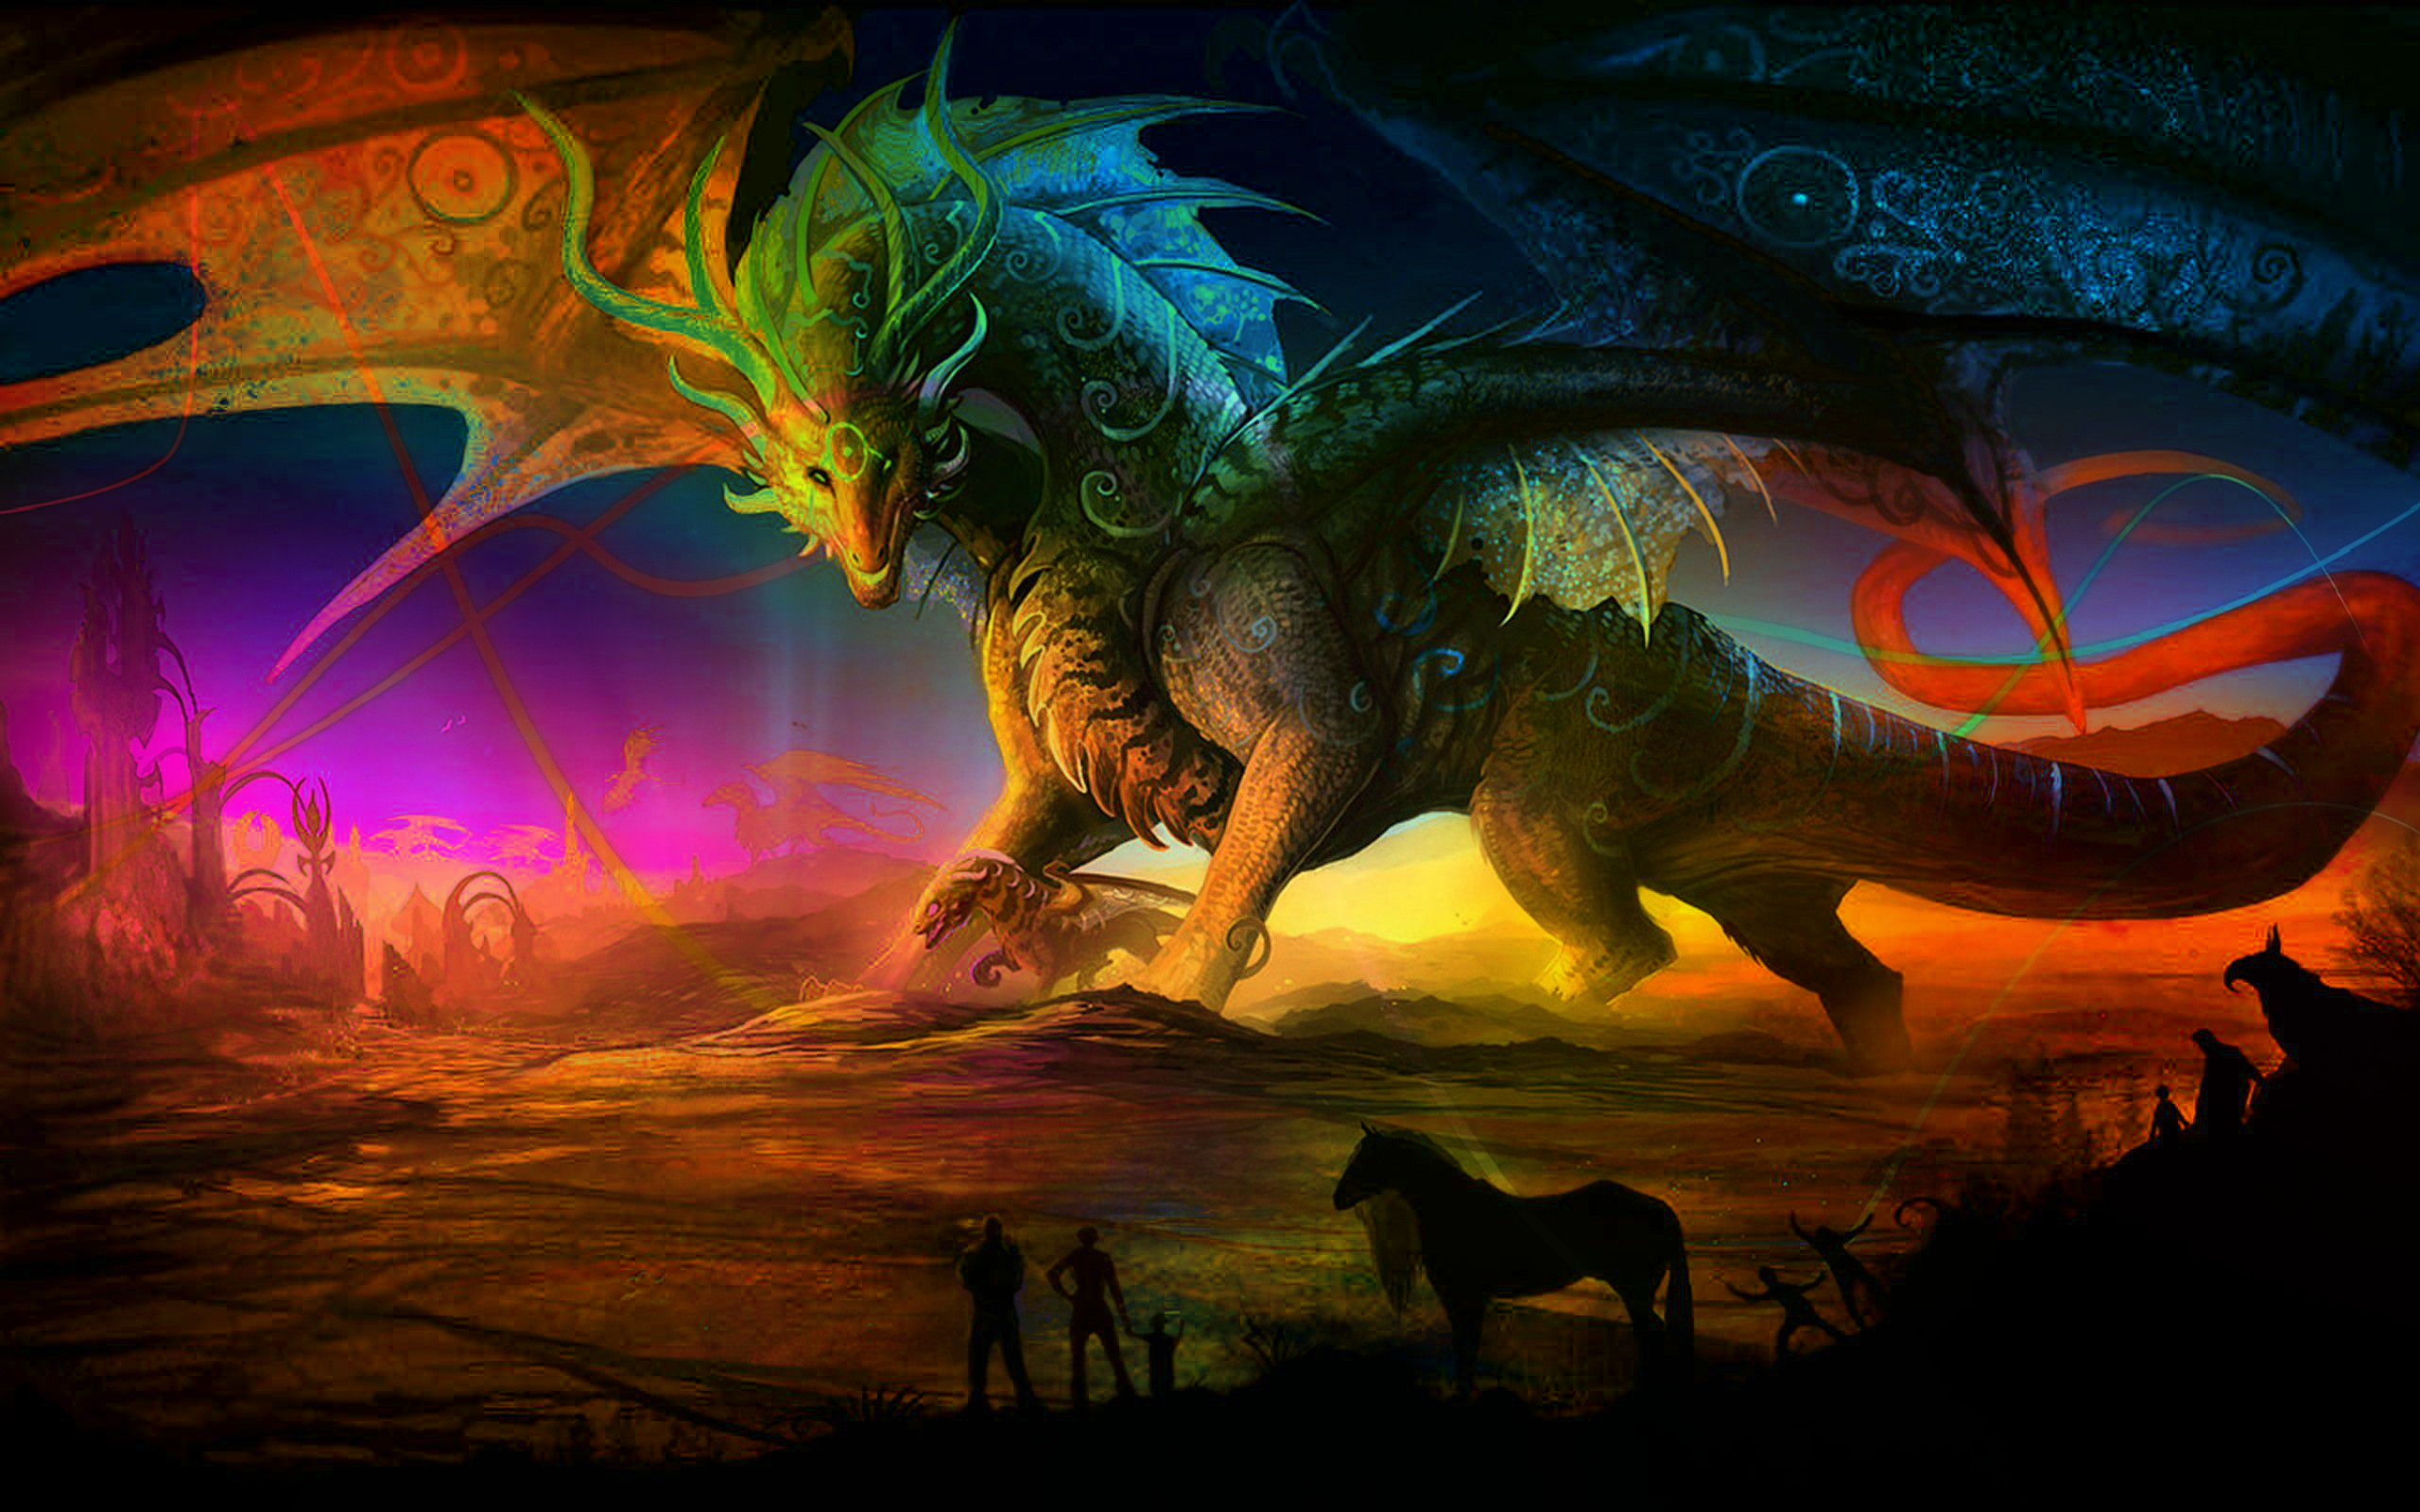 Red Dragon Girl Wallpaper 30 Magnificent Free Hd Fantasy Art Wallpaper For Your